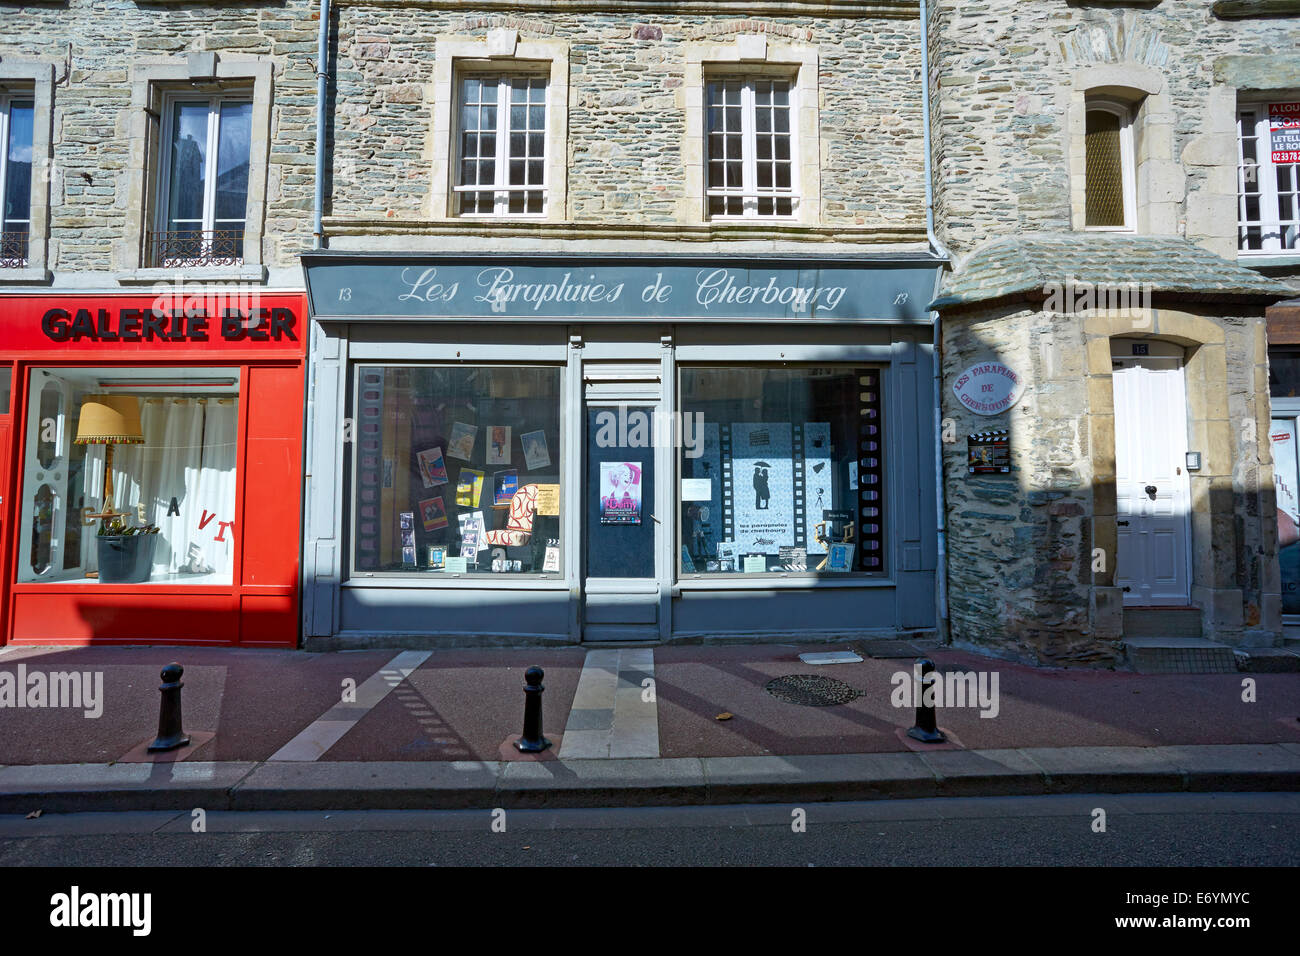 Les Location Photograph Of The Shop Used For The Exterior Location For Les